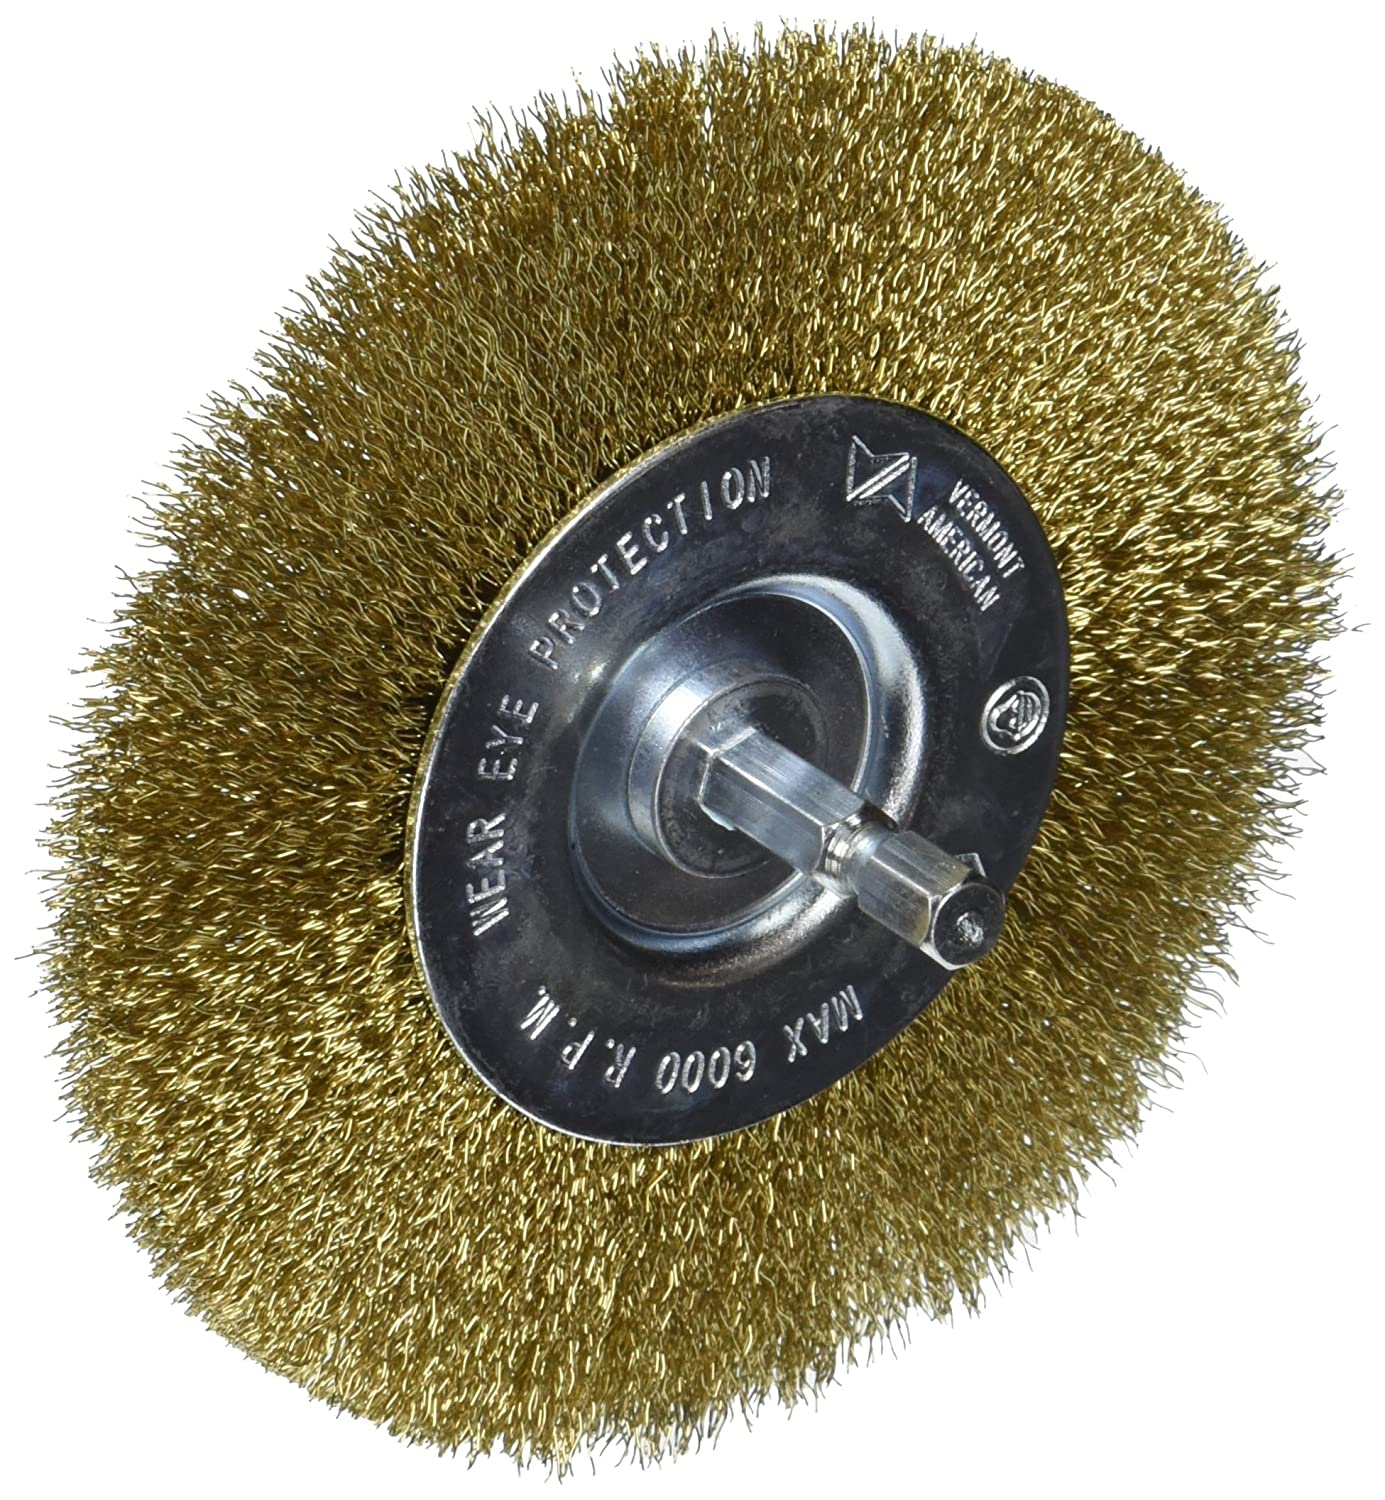 Vermont American 16794 4 Inch Fine Brass Wire Wheel Brush with 1 4 Inch Hex Shank for Drill